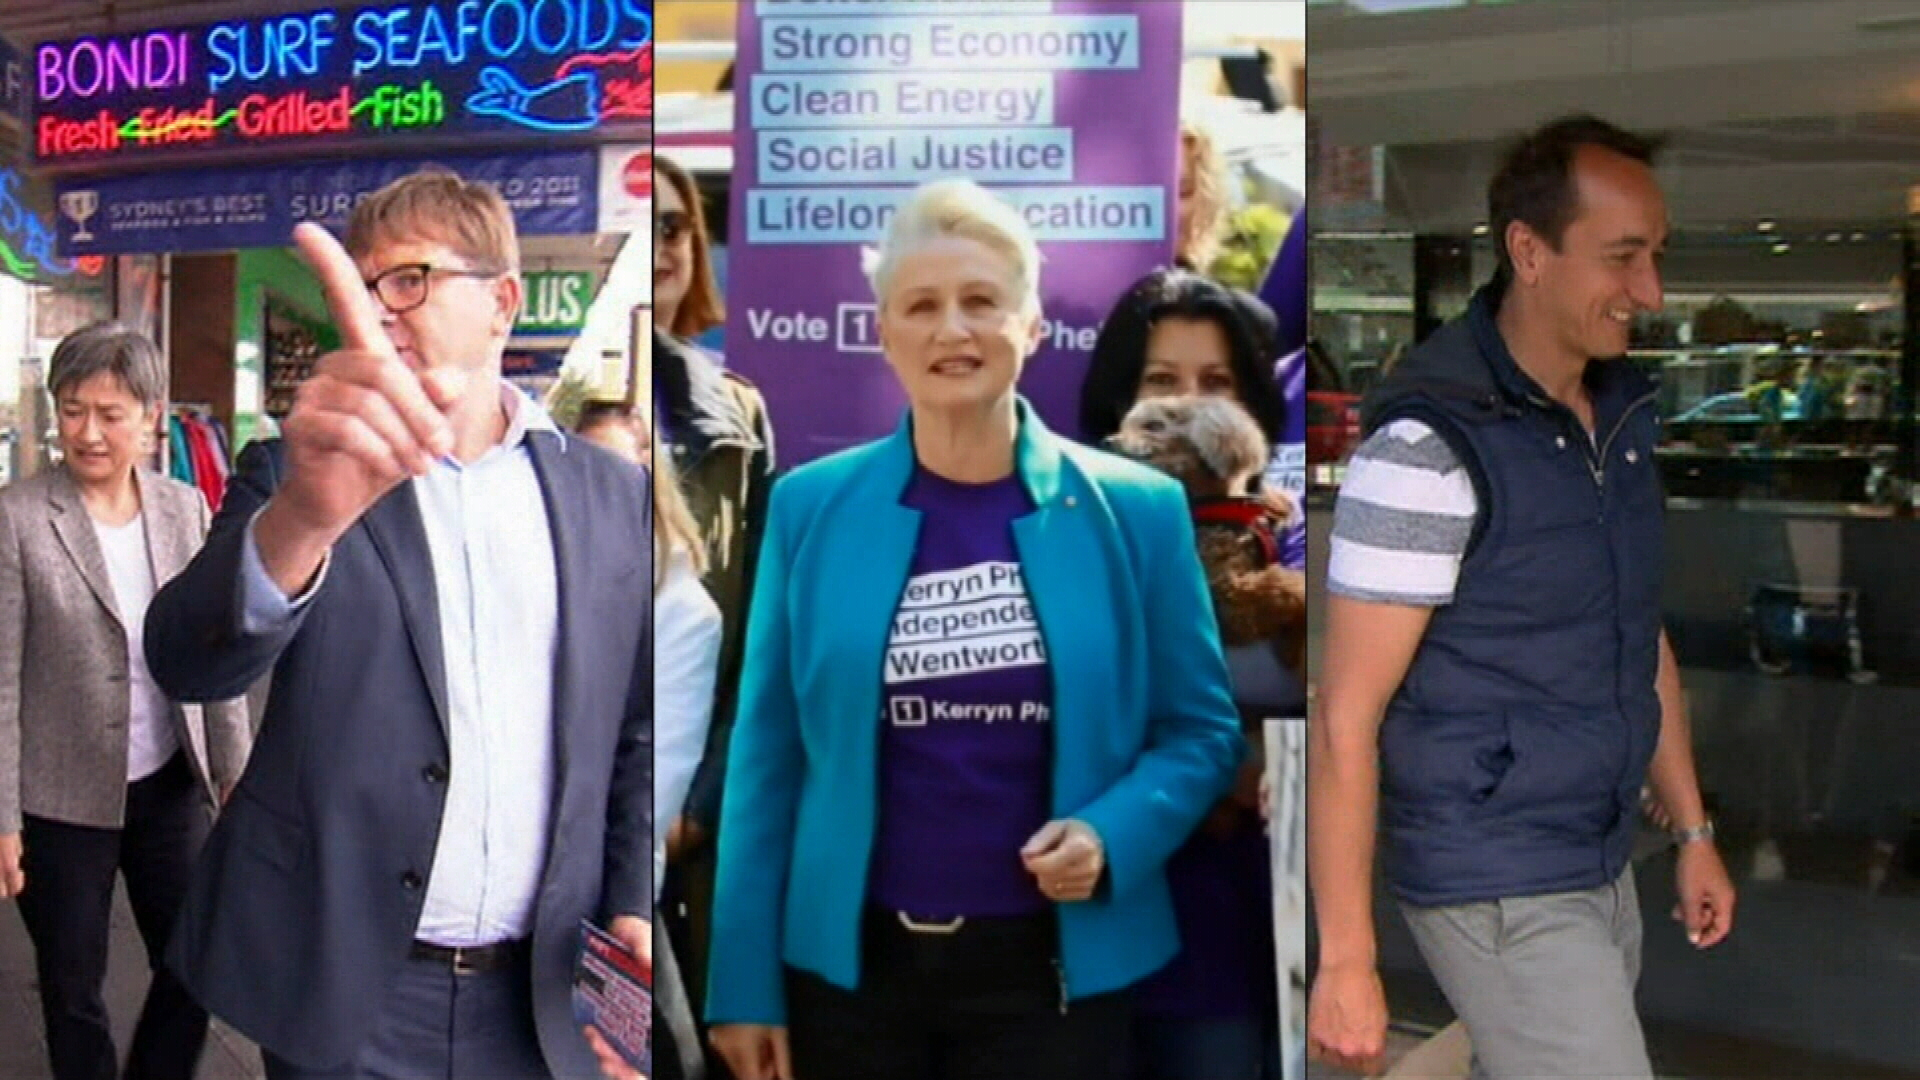 Phelps tipped to take out Wentworth election